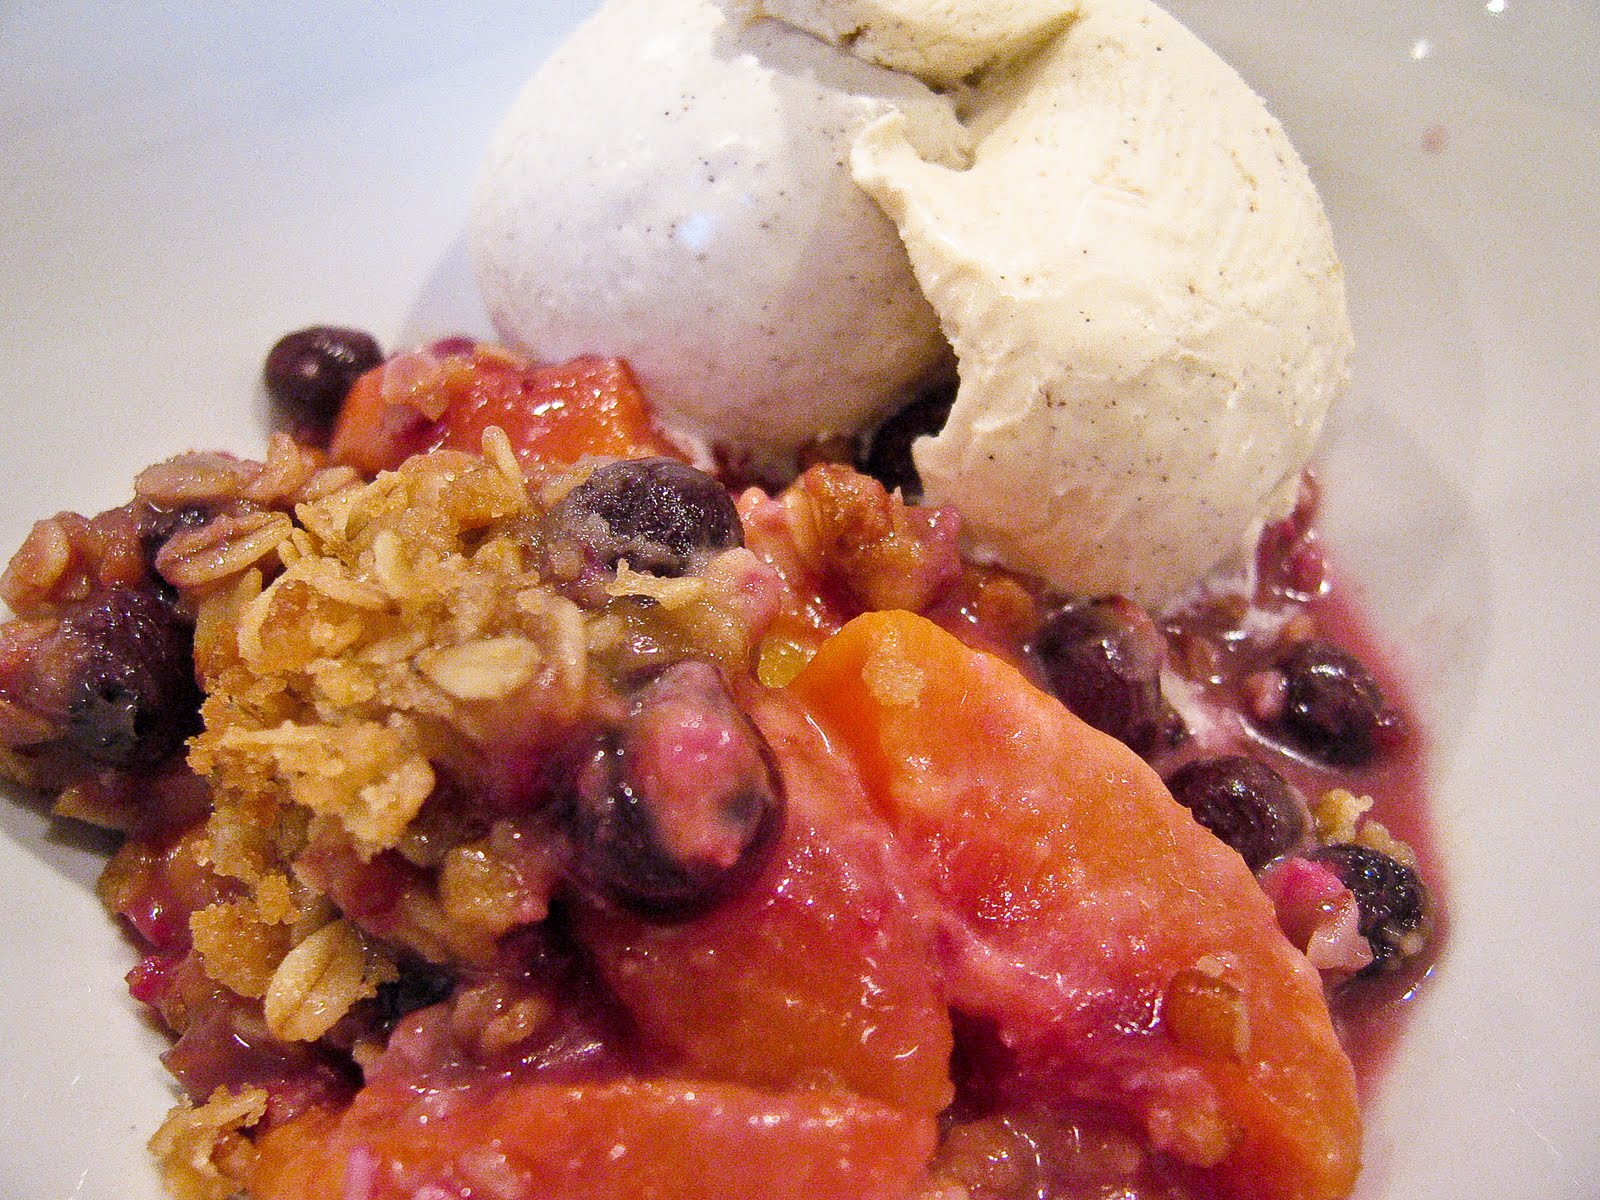 Blueberry Peach Crisp - The Spiced Life